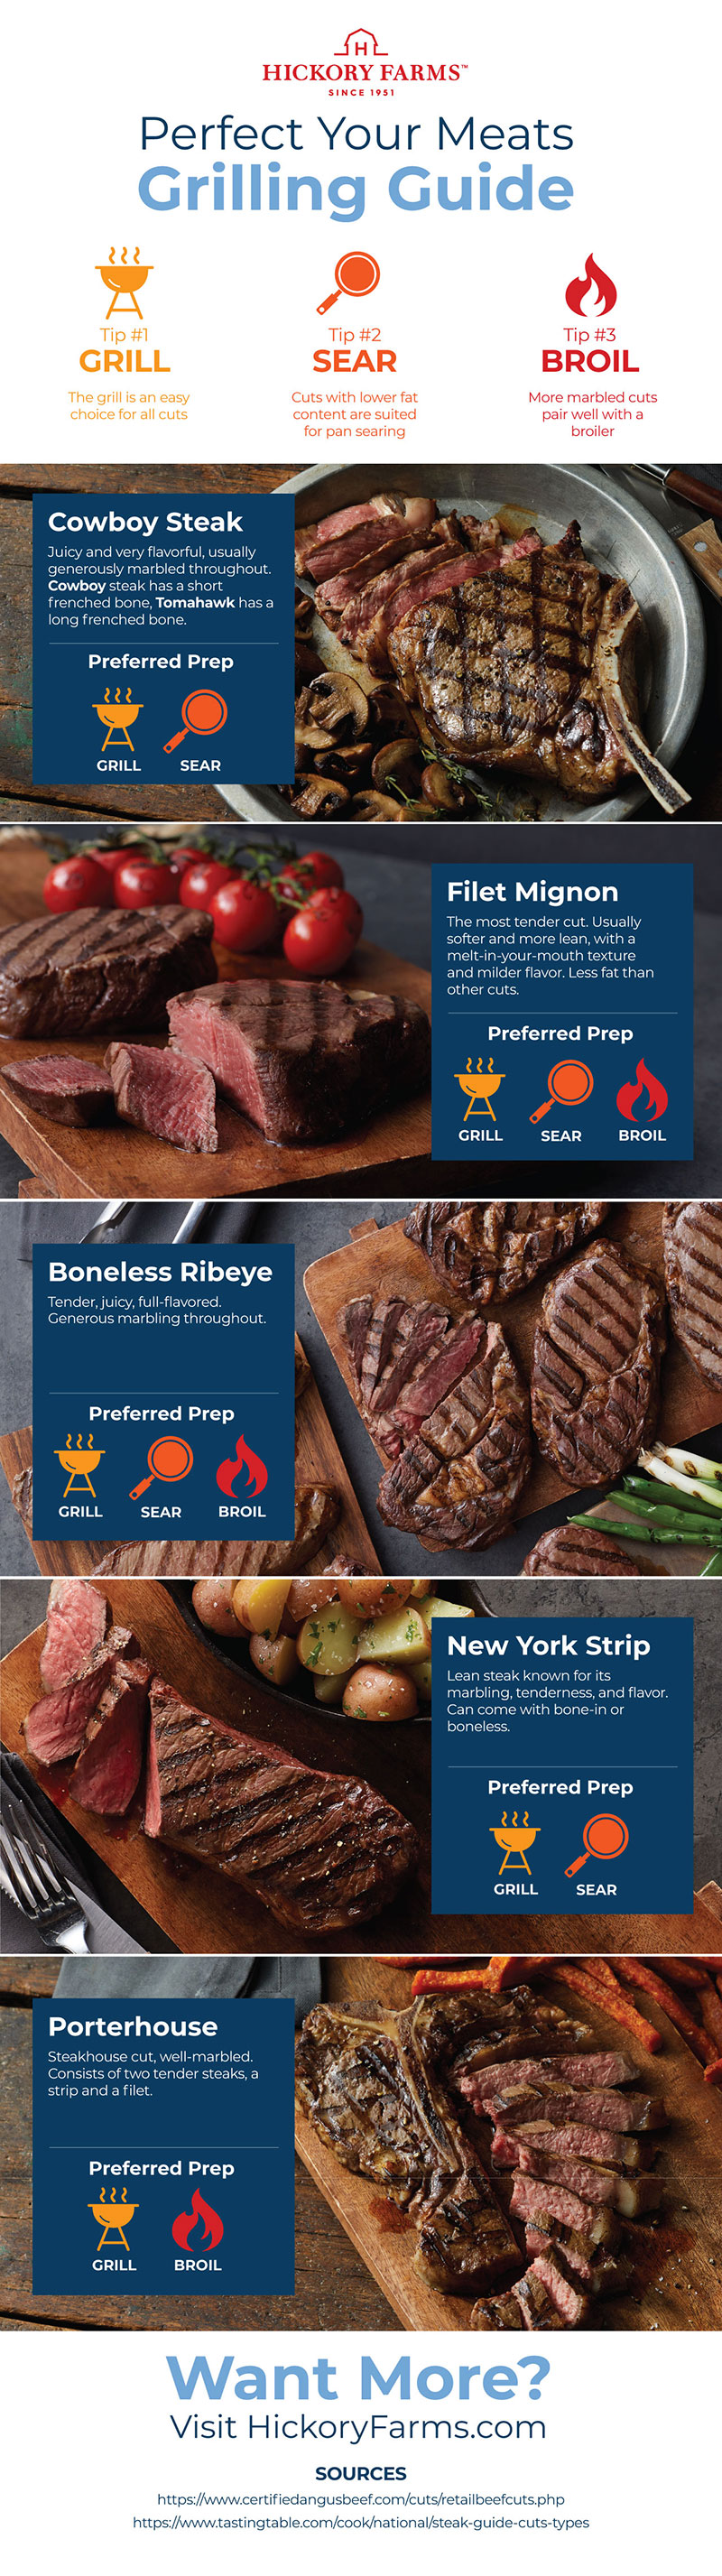 Hickory Farms Grilling Guide